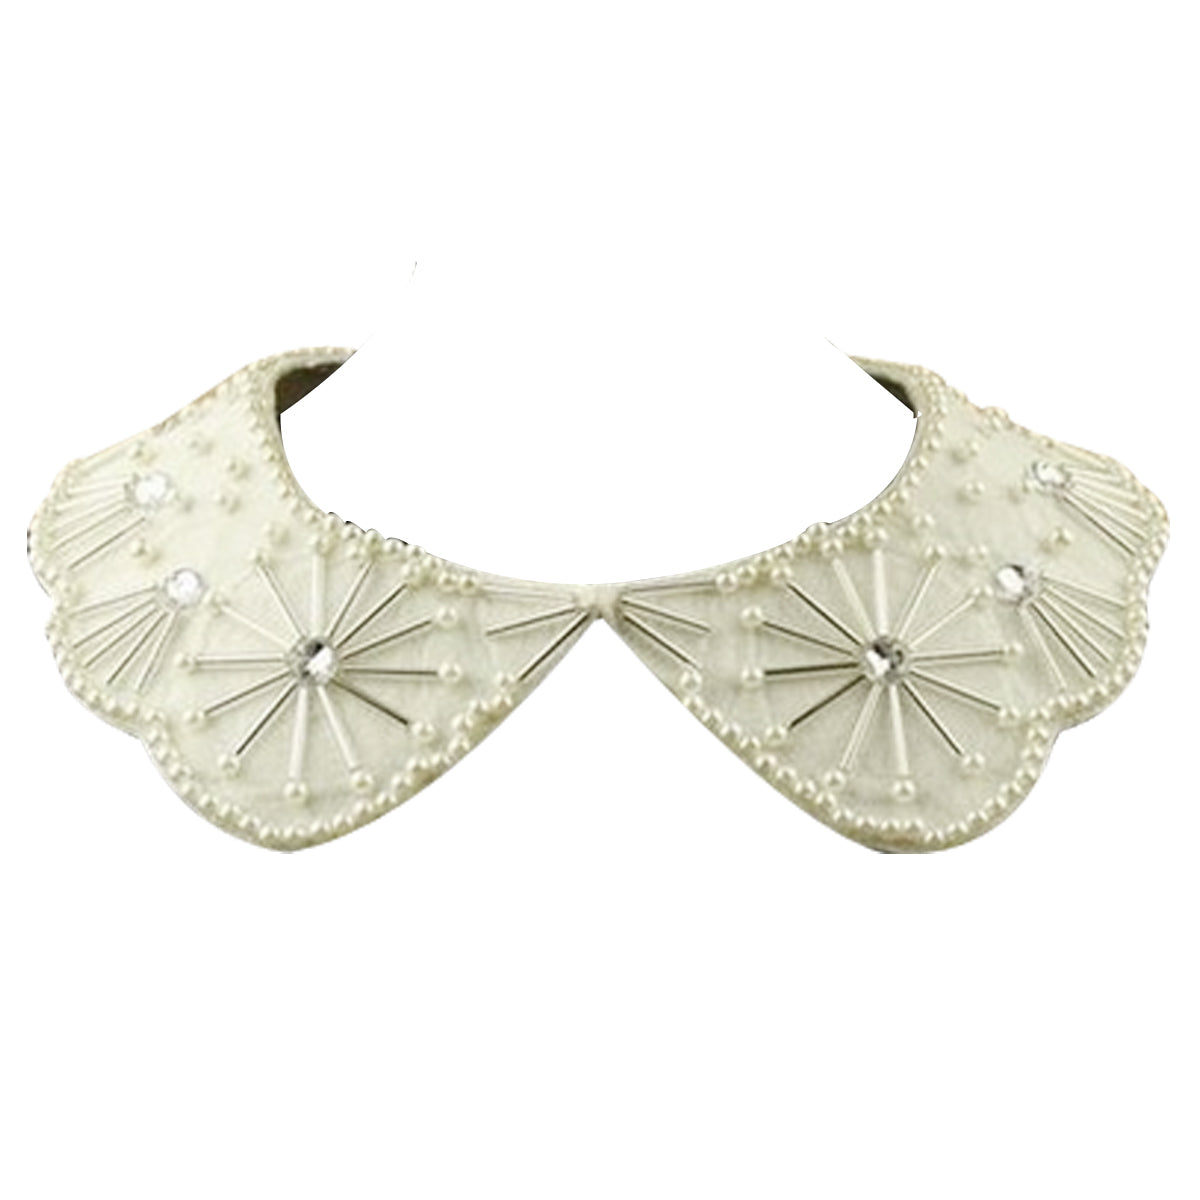 Cream Collar Necklace with Faux Pearls and Snowflake Accents